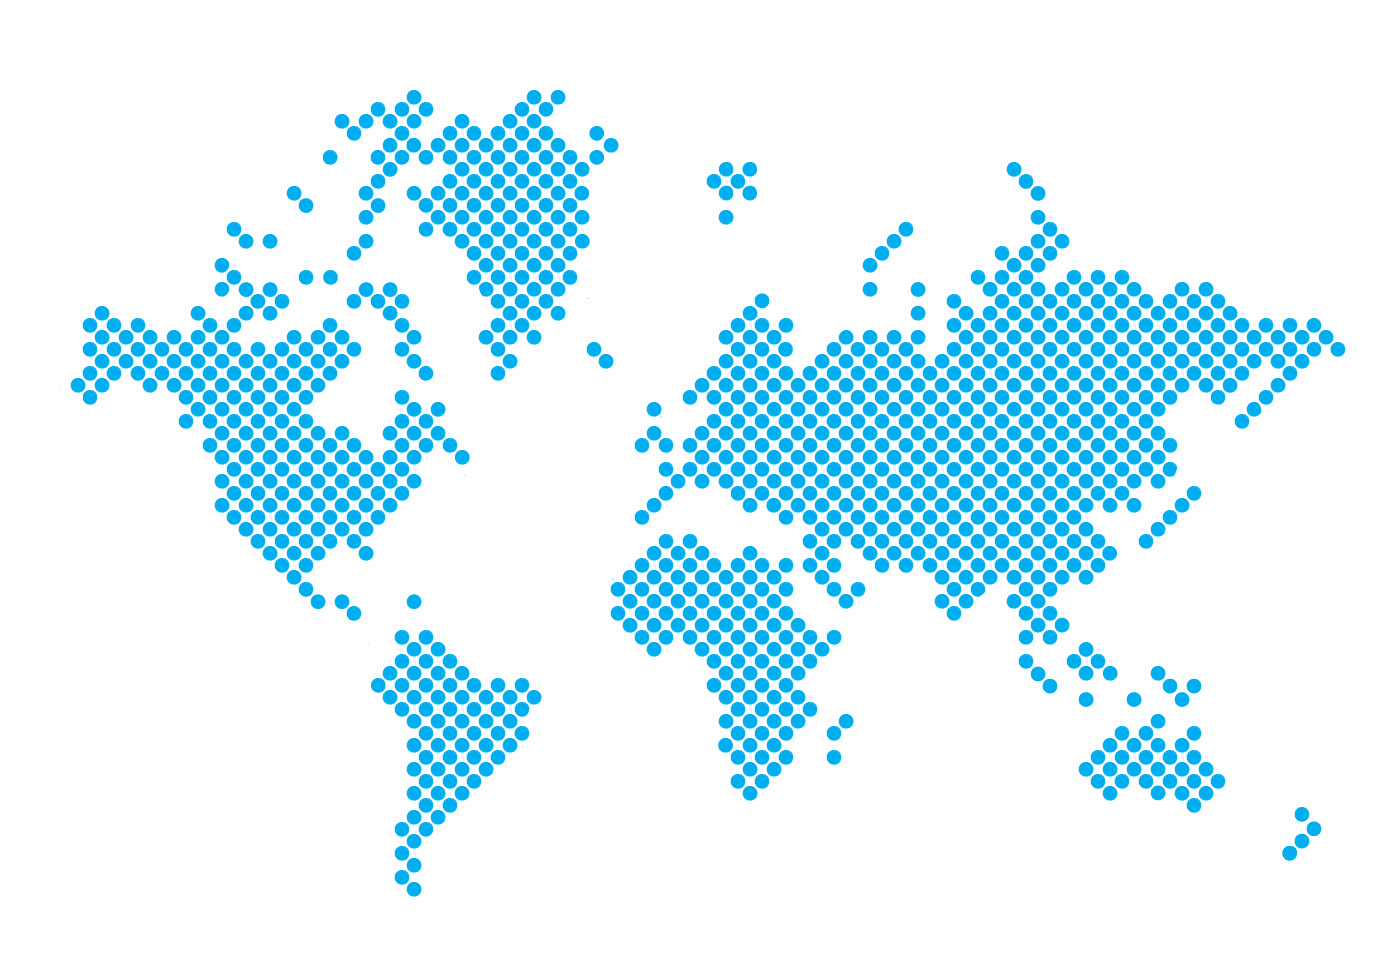 Dotted World Map - Download Free Vector Art, Stock Graphics & Images